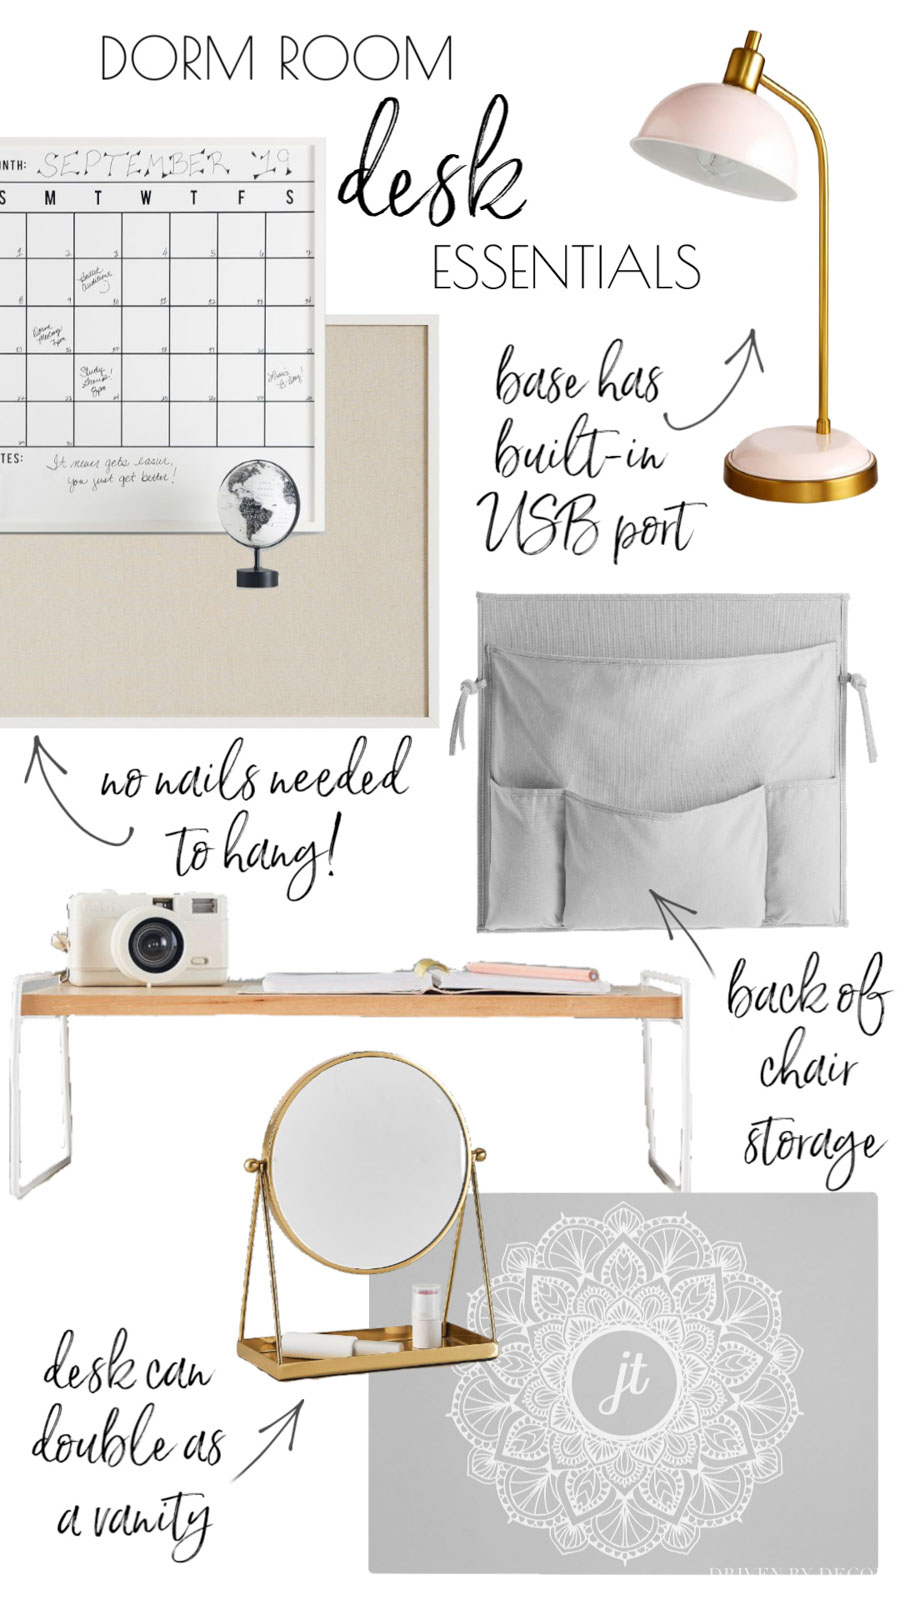 So helpful! A college dorm room checklist with all of the desk items you'll need!